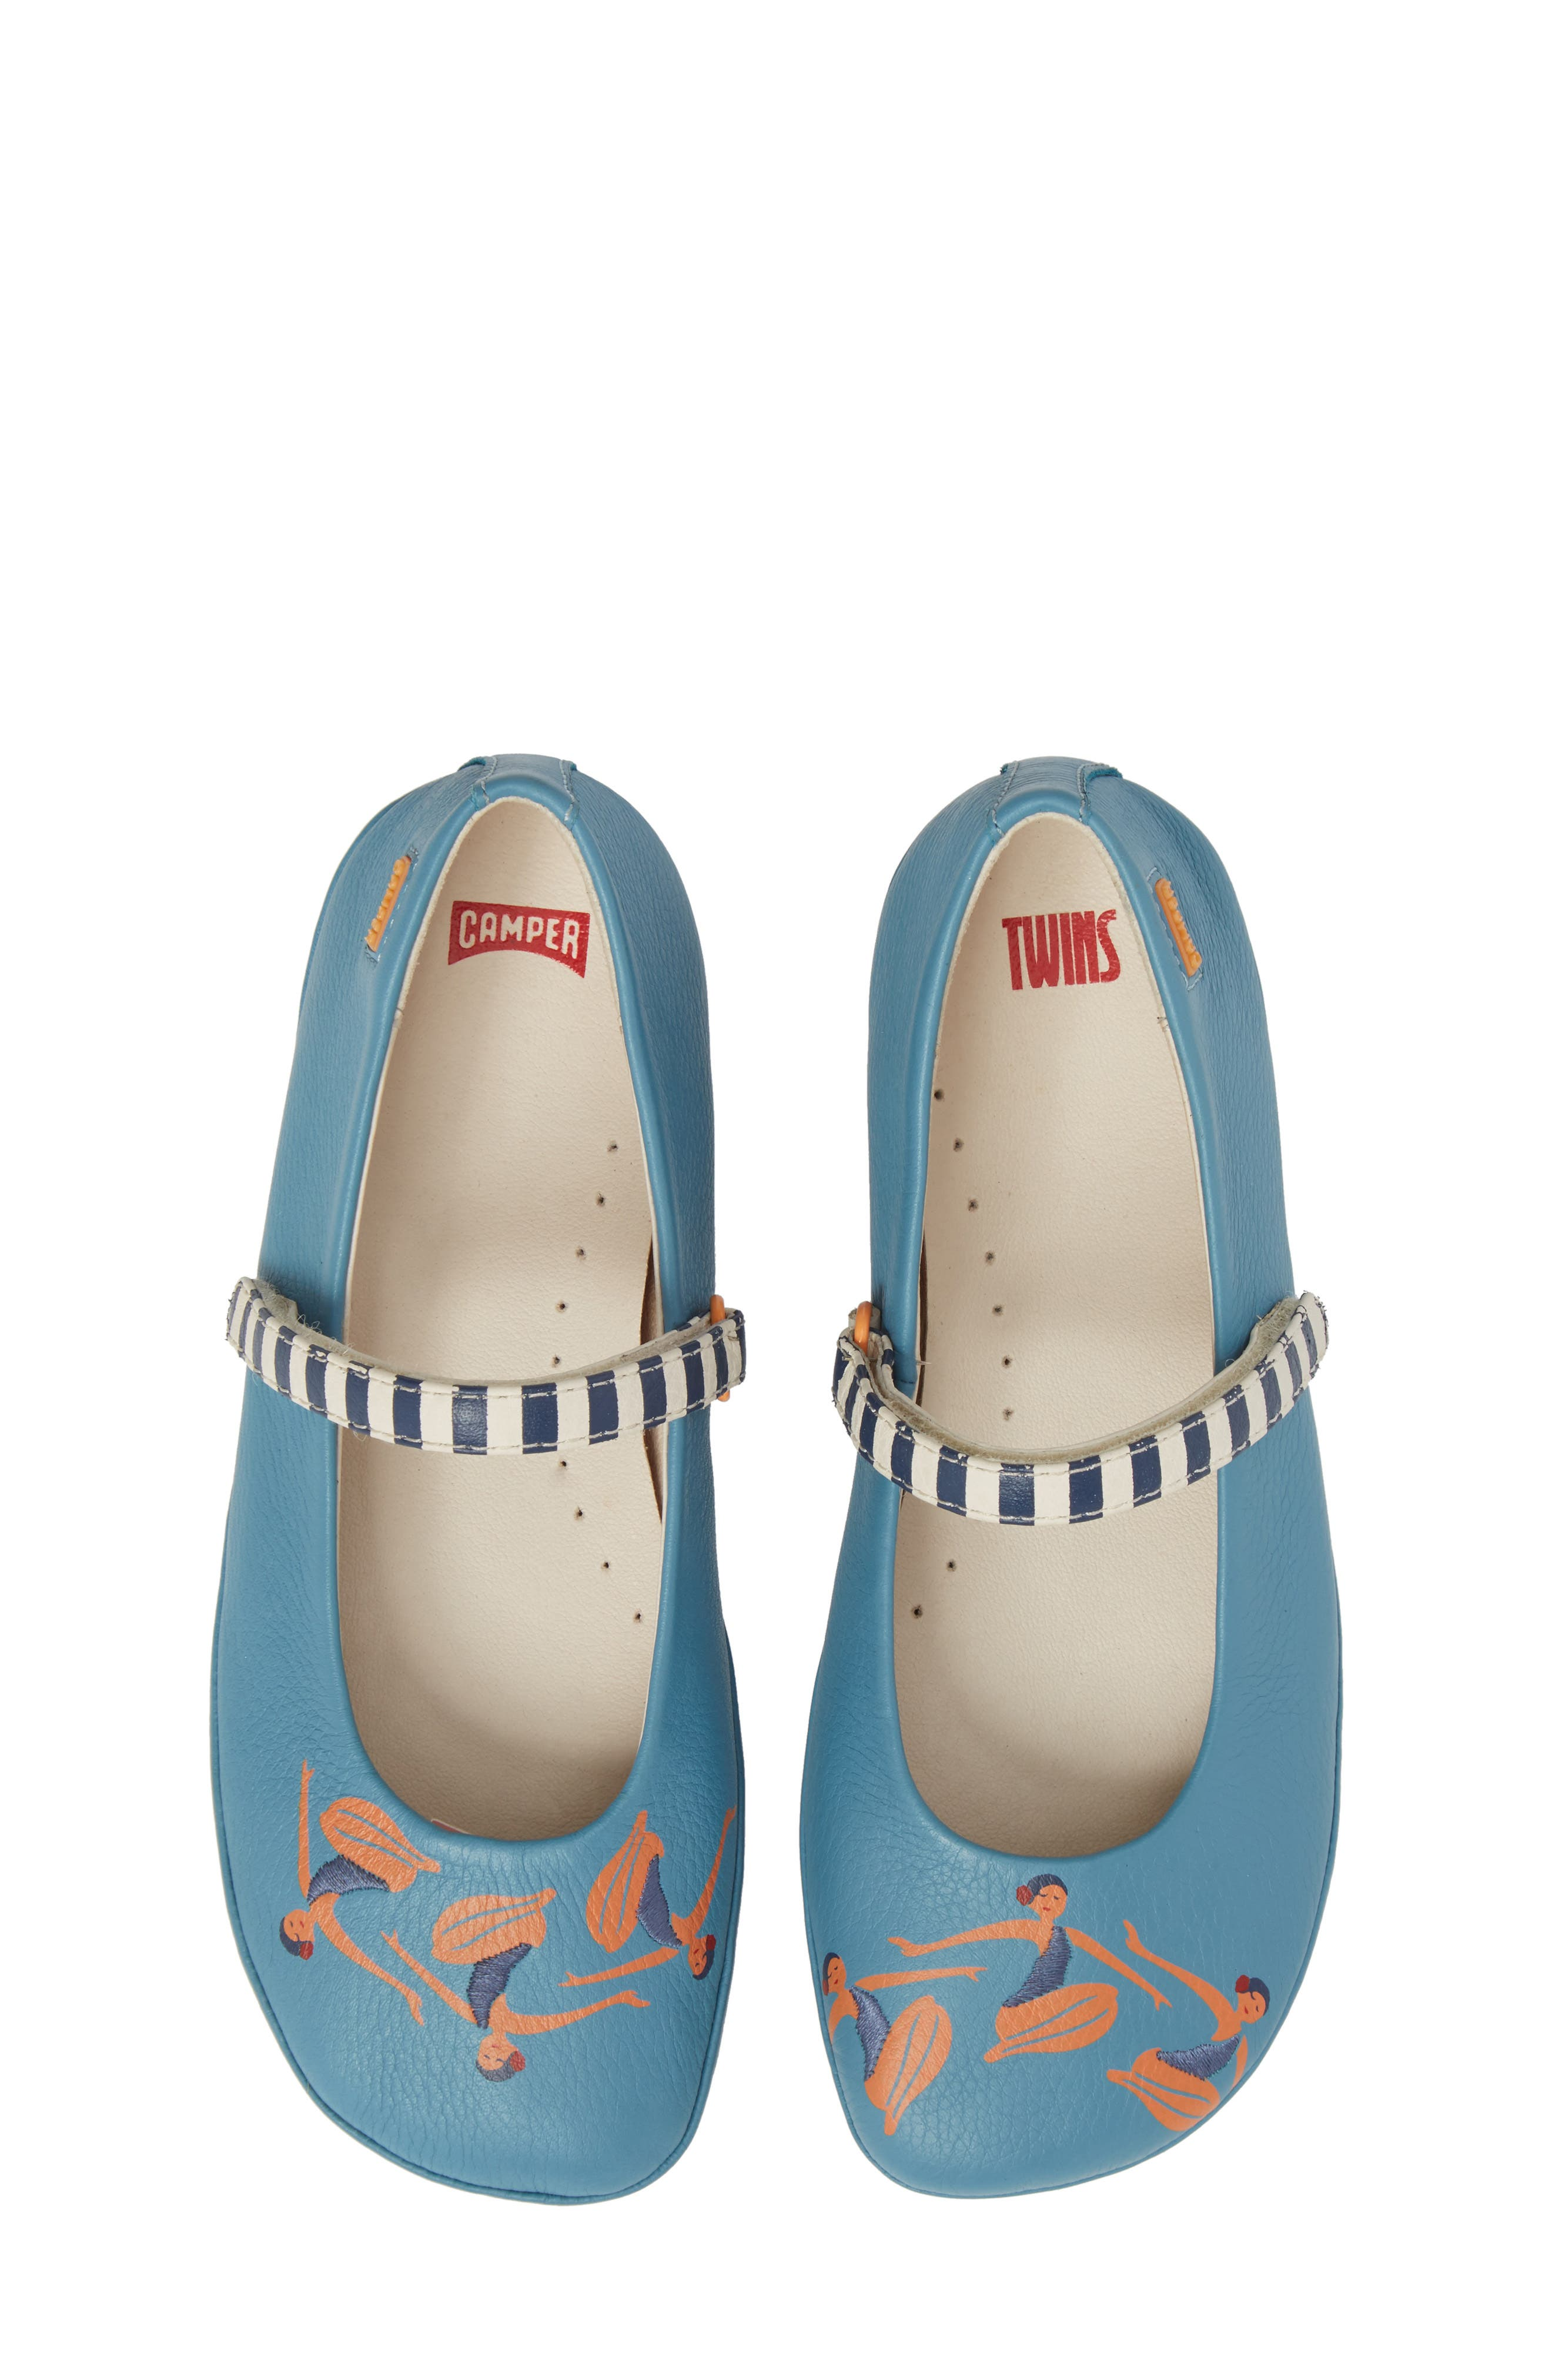 Twins Mary Jane Flat,                         Main,                         color, 420